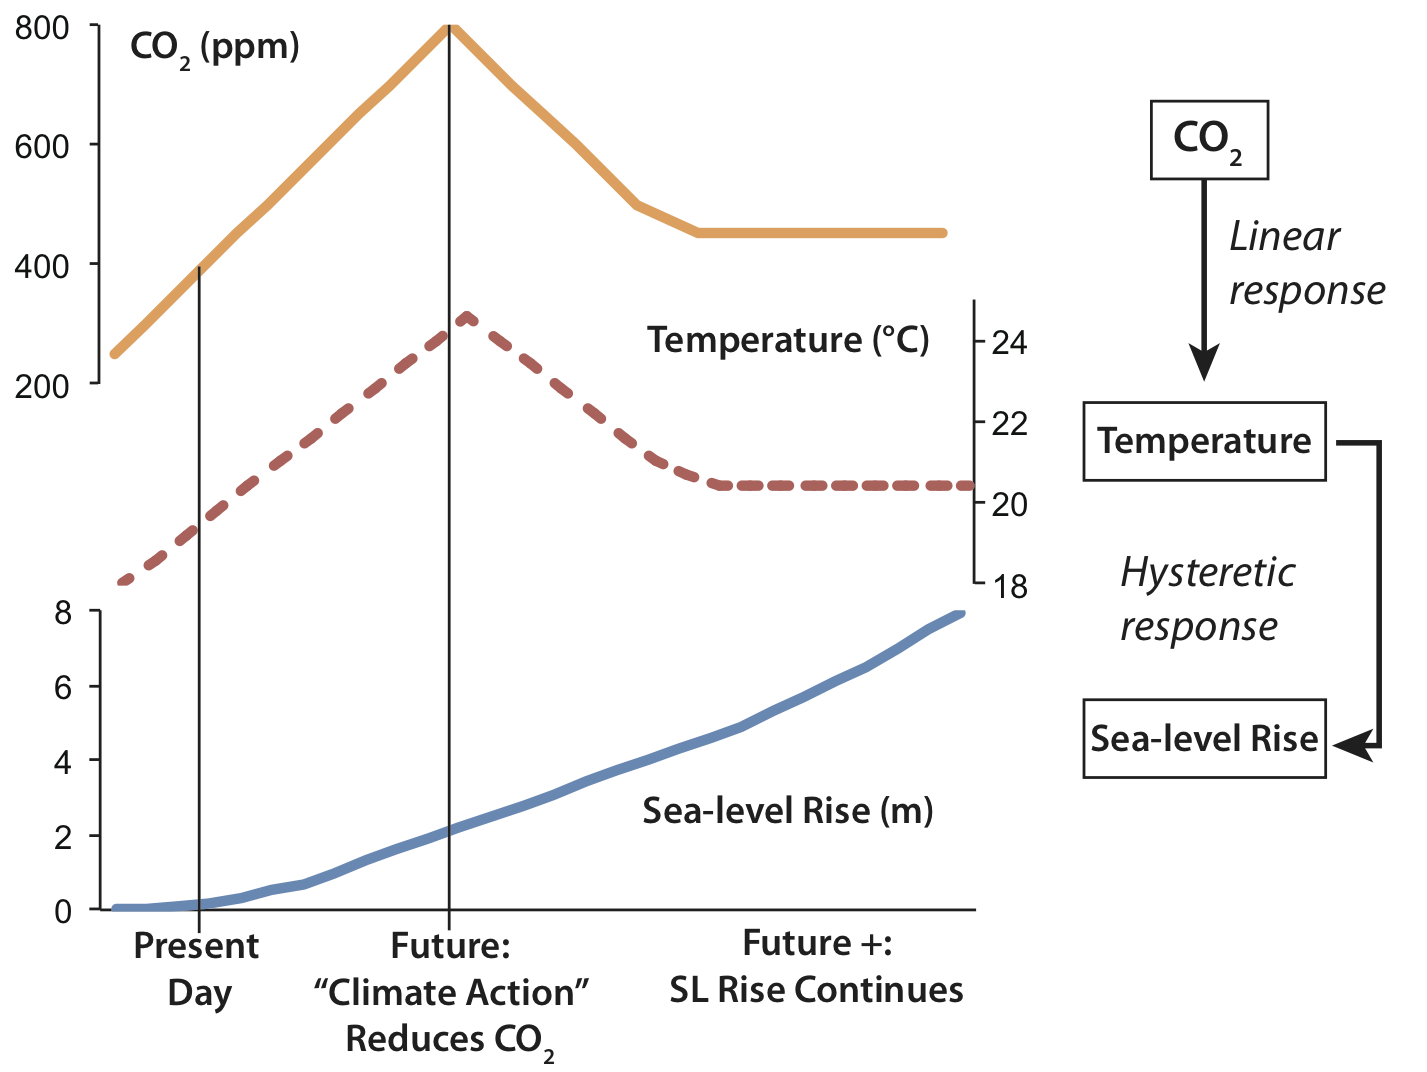 Hypothetical example illustrating the difference between linear responses and hysteretic responses. Note: this represents a major oversimplification of the climate system, and the exact relationships between CO2, temperature and sea-level rise shown here should not be accepted as scientific fact.